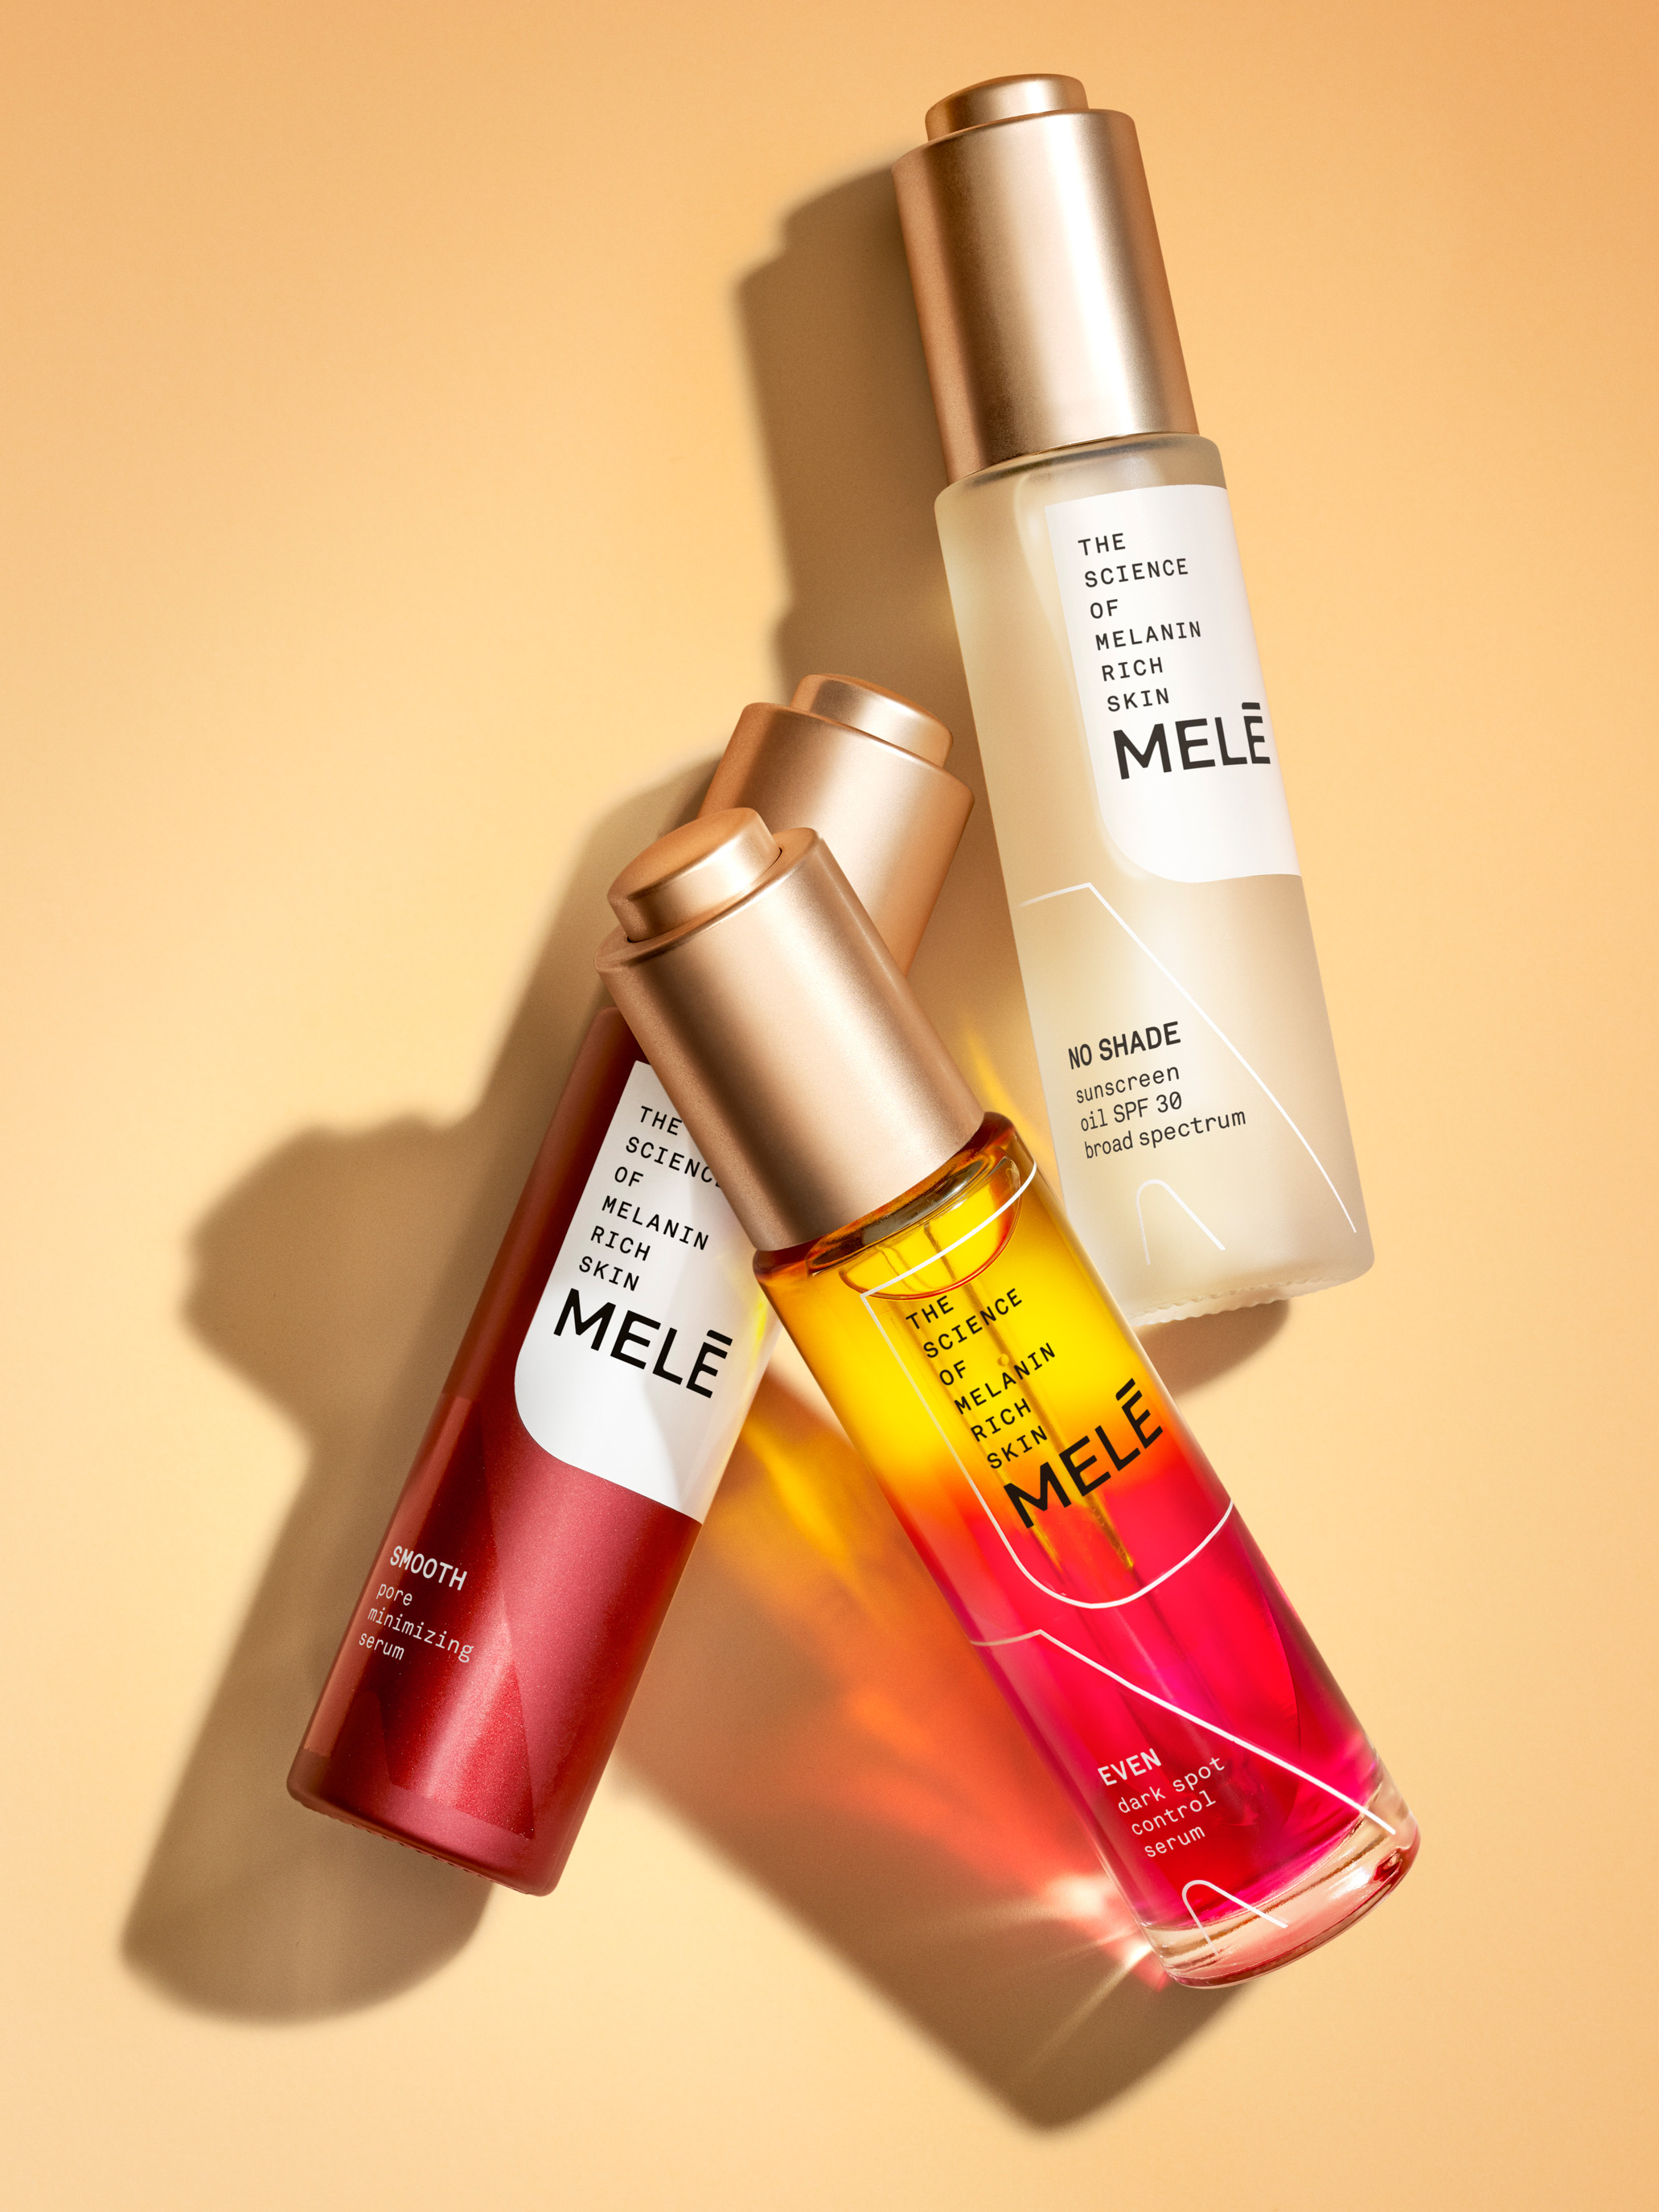 STAN_MELE_SKINCARE_SMALL_GROUP_SERUMS_OVERHEAD.JPG